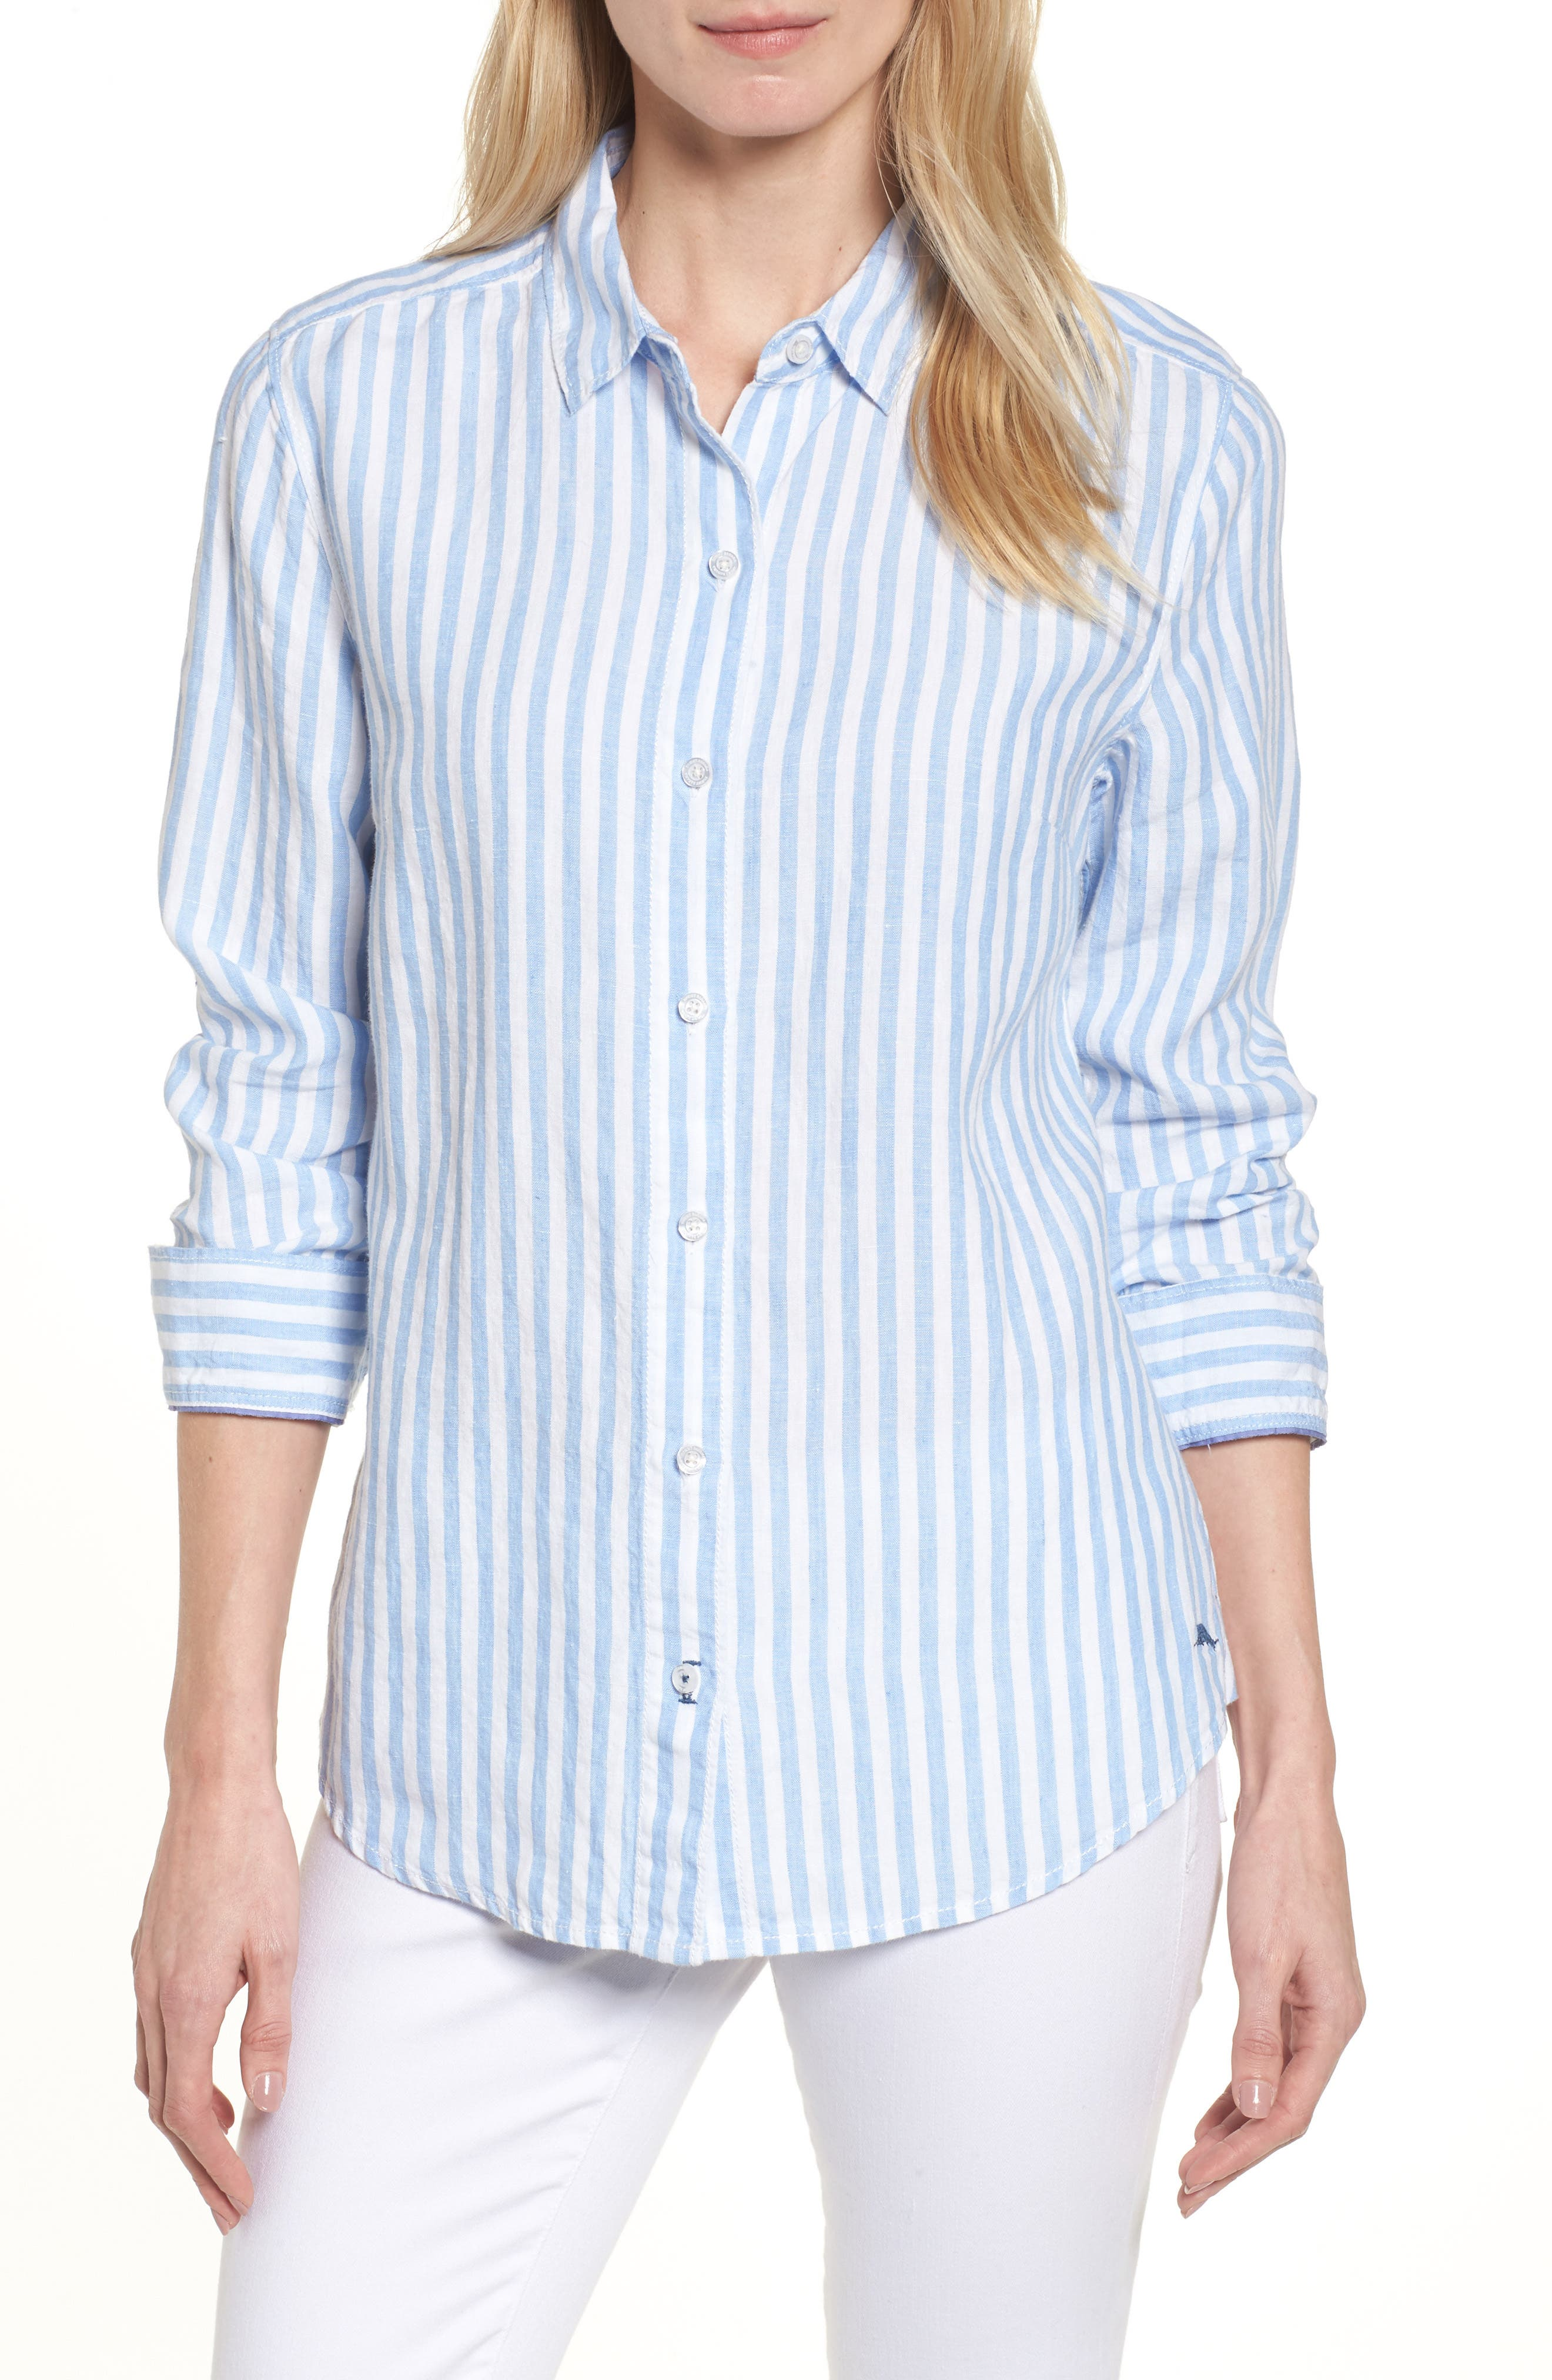 Cabana Stripe Button-Up Top,                         Main,                         color, DUSTY LUPINE